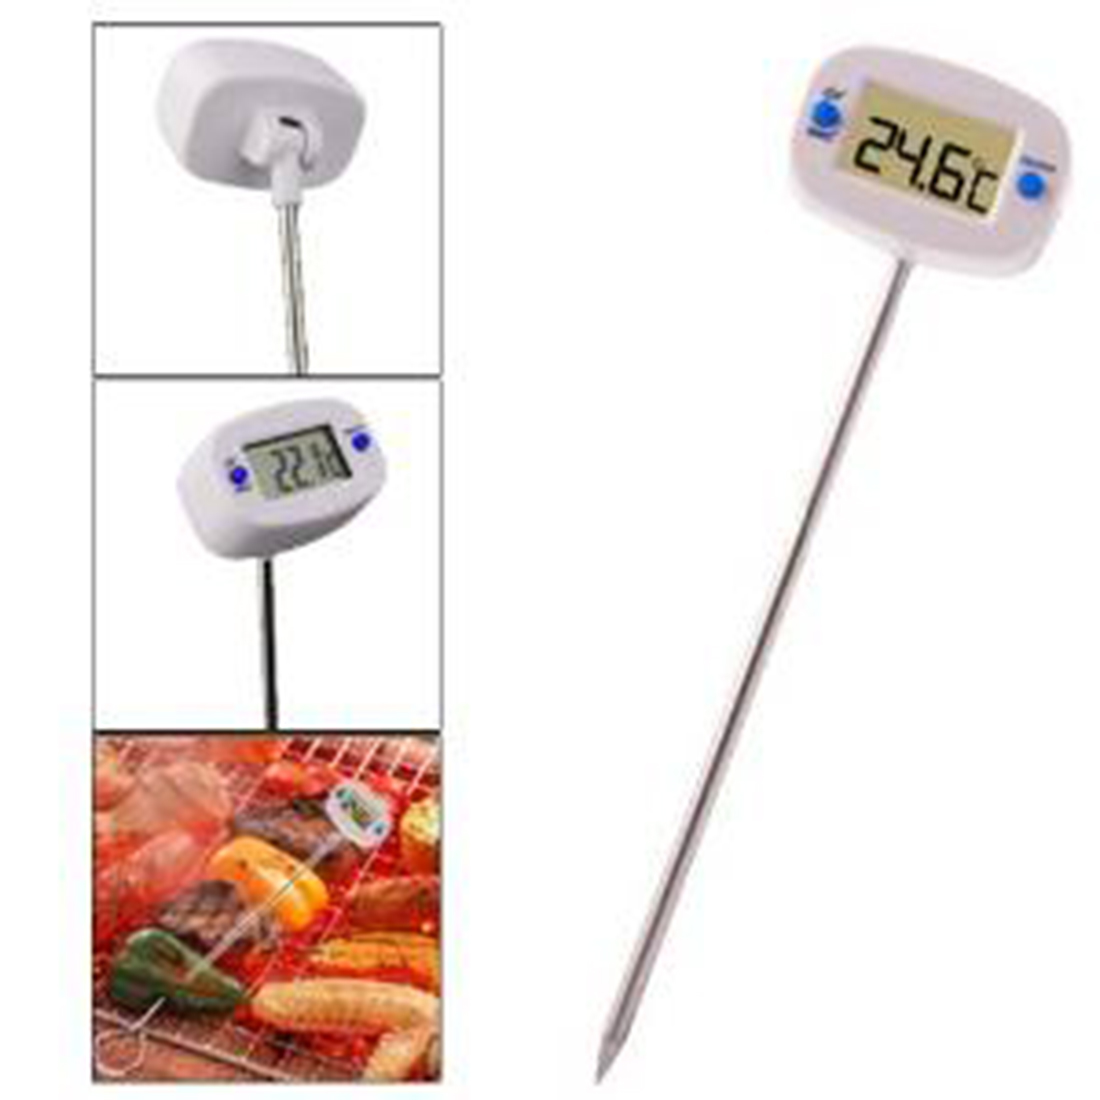 Digital Probe Cooking Thermometer Food Temperature Sensor LCD Display For BBQ Kitchen C/F Switch Silver